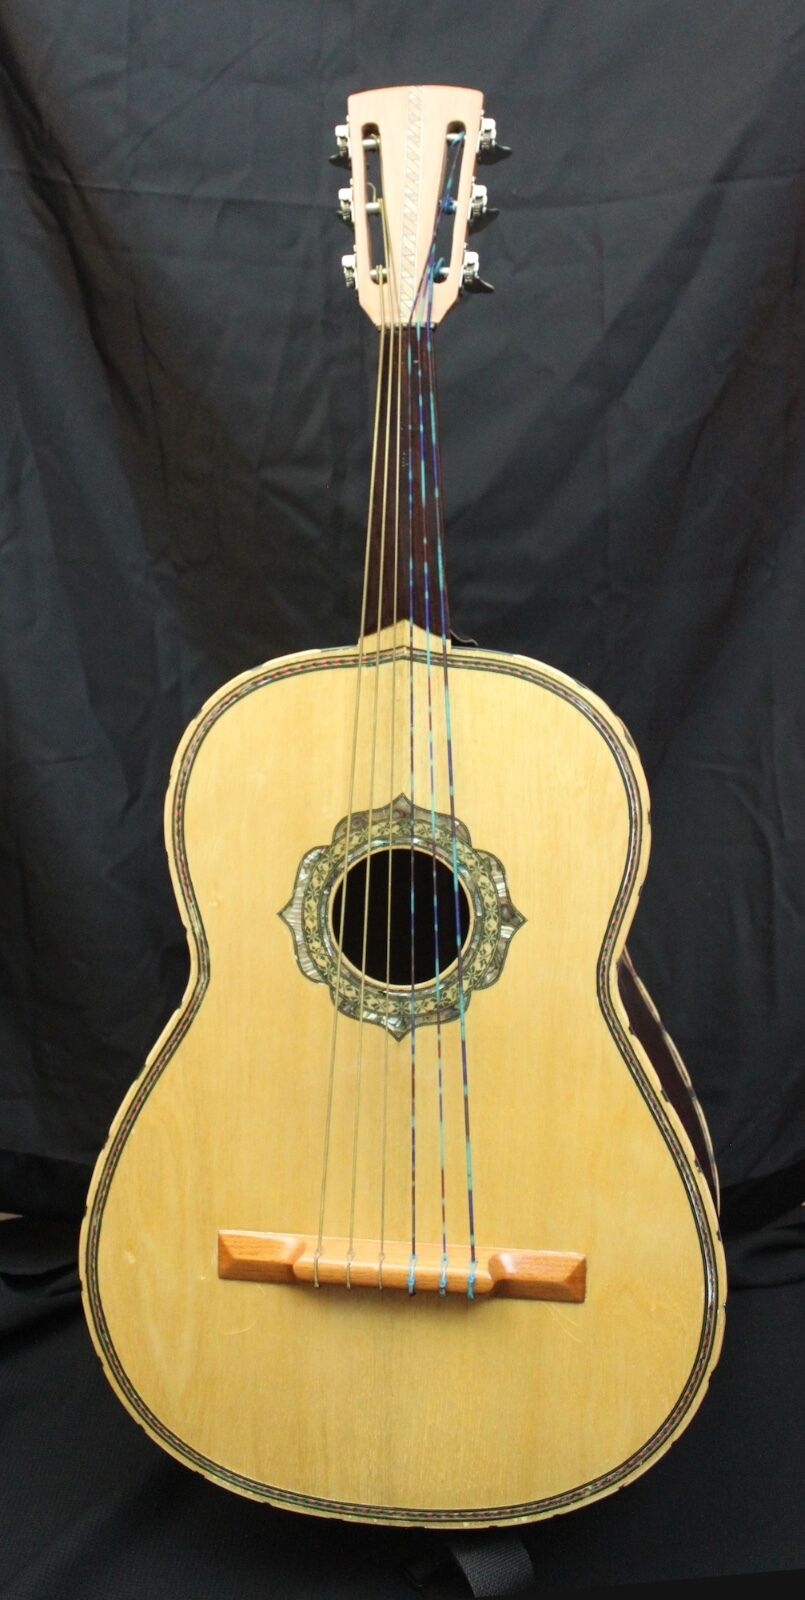 used j l reyes mexican guitarron acoustic 6 string bass guitar ebay. Black Bedroom Furniture Sets. Home Design Ideas